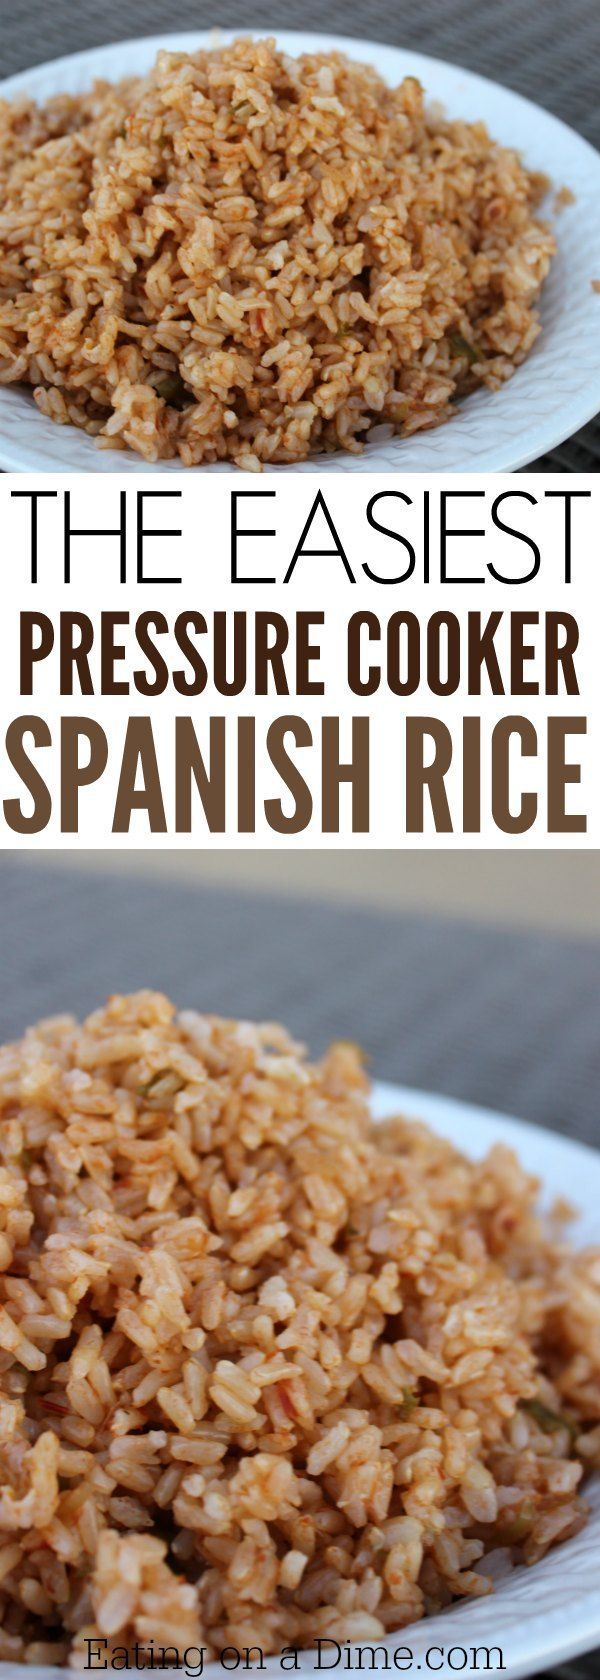 Easy Spanish Rice Pressure Cooker